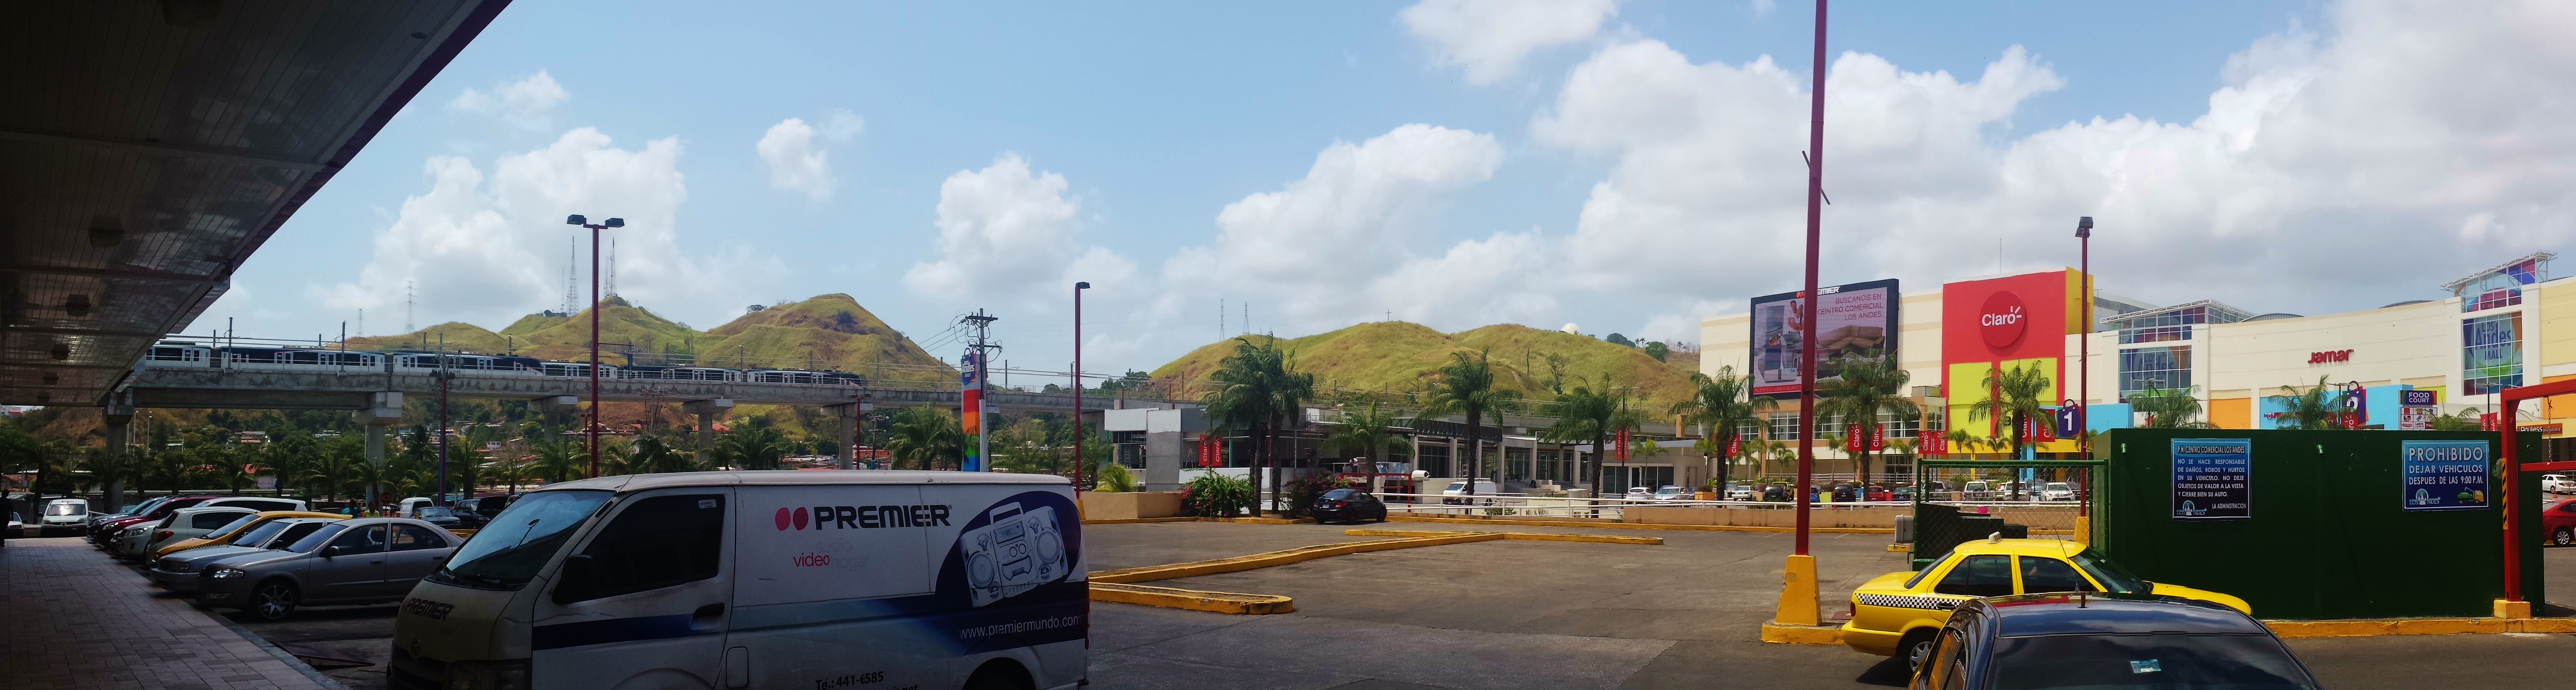 Panorama of the Los Andes Mall